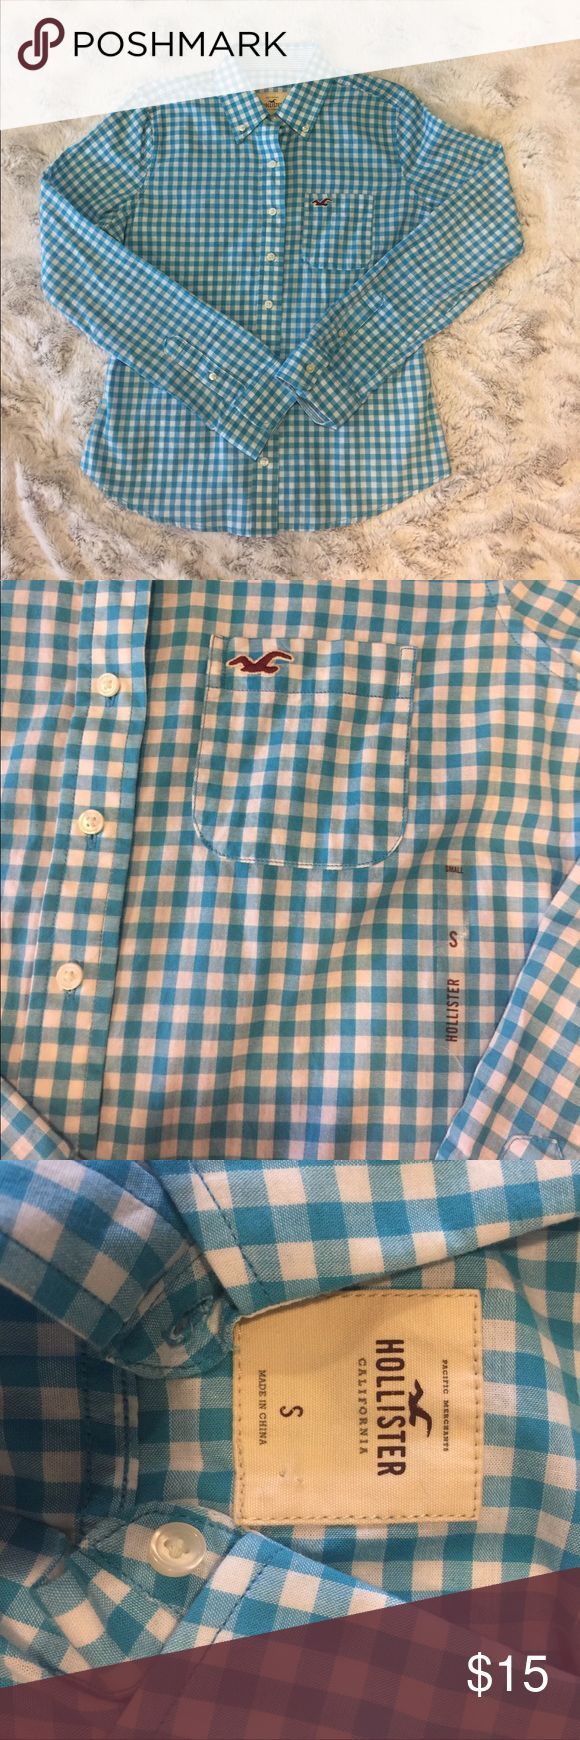 NWT Hollister Blue Checkered shirt Brand new. Smoke free. Pet free Hollister Tops Button Down Shirts